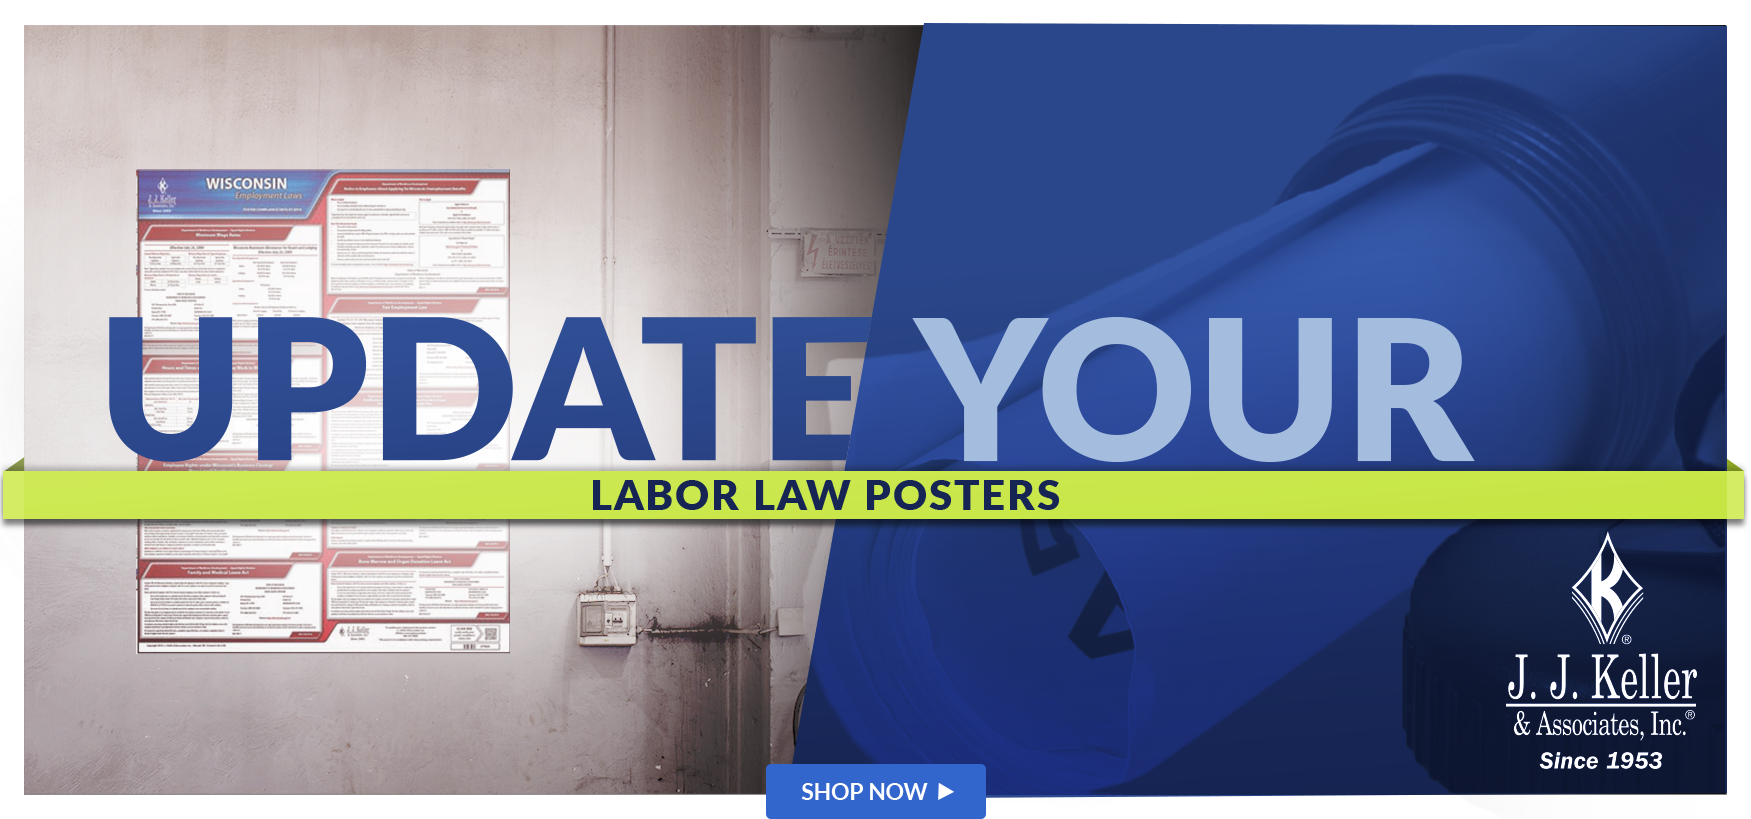 It's time to update your Labor Law Posters